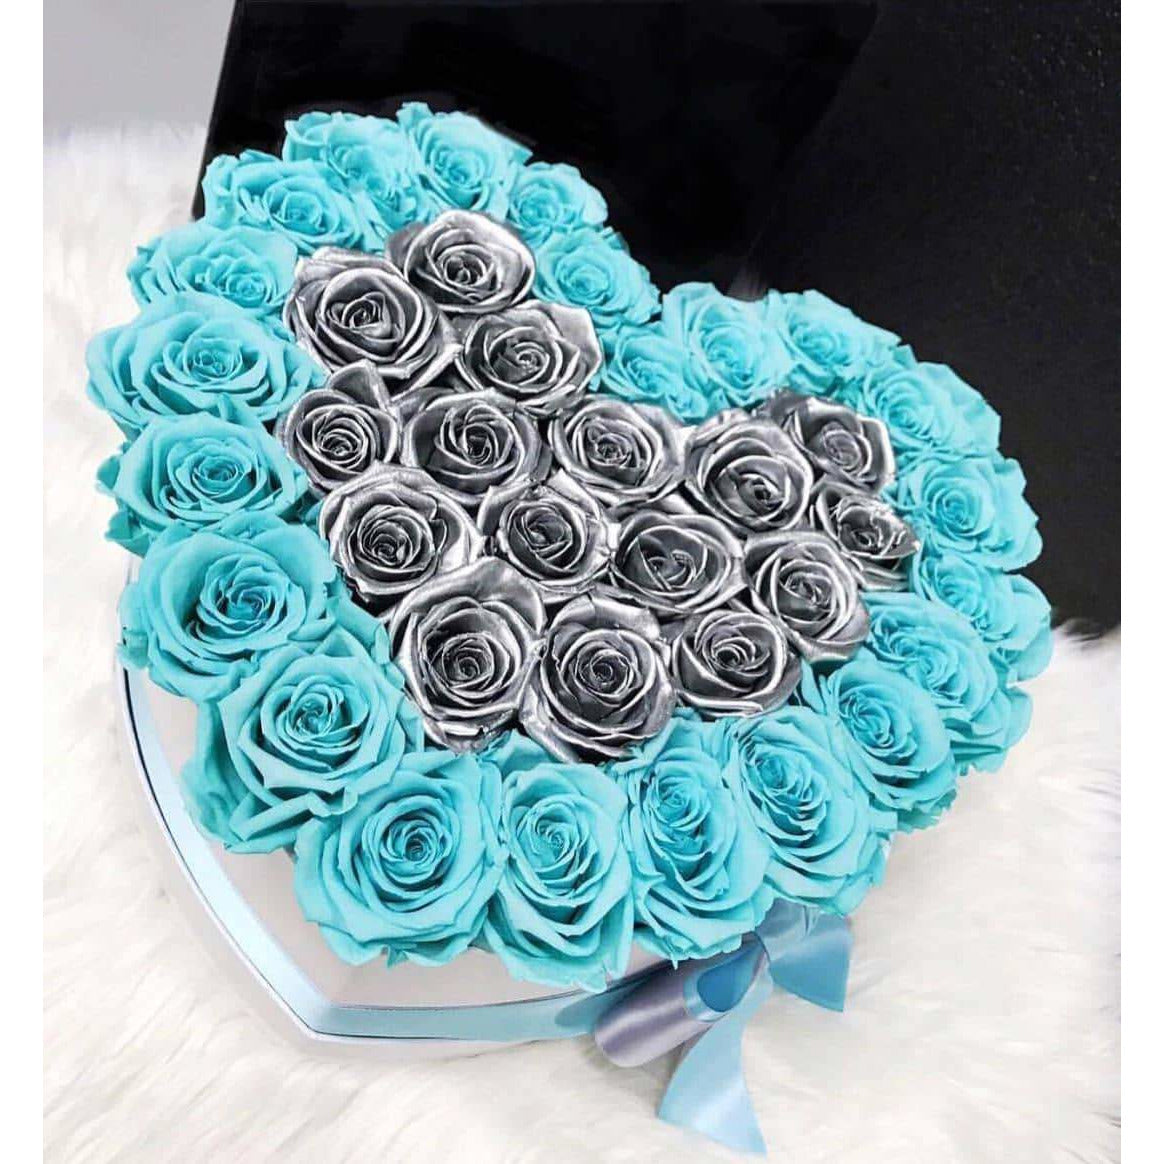 Tiffany Blue & Metallic Silver Roses That Last A Year - Love Heart Rose Box - Palatial Petals